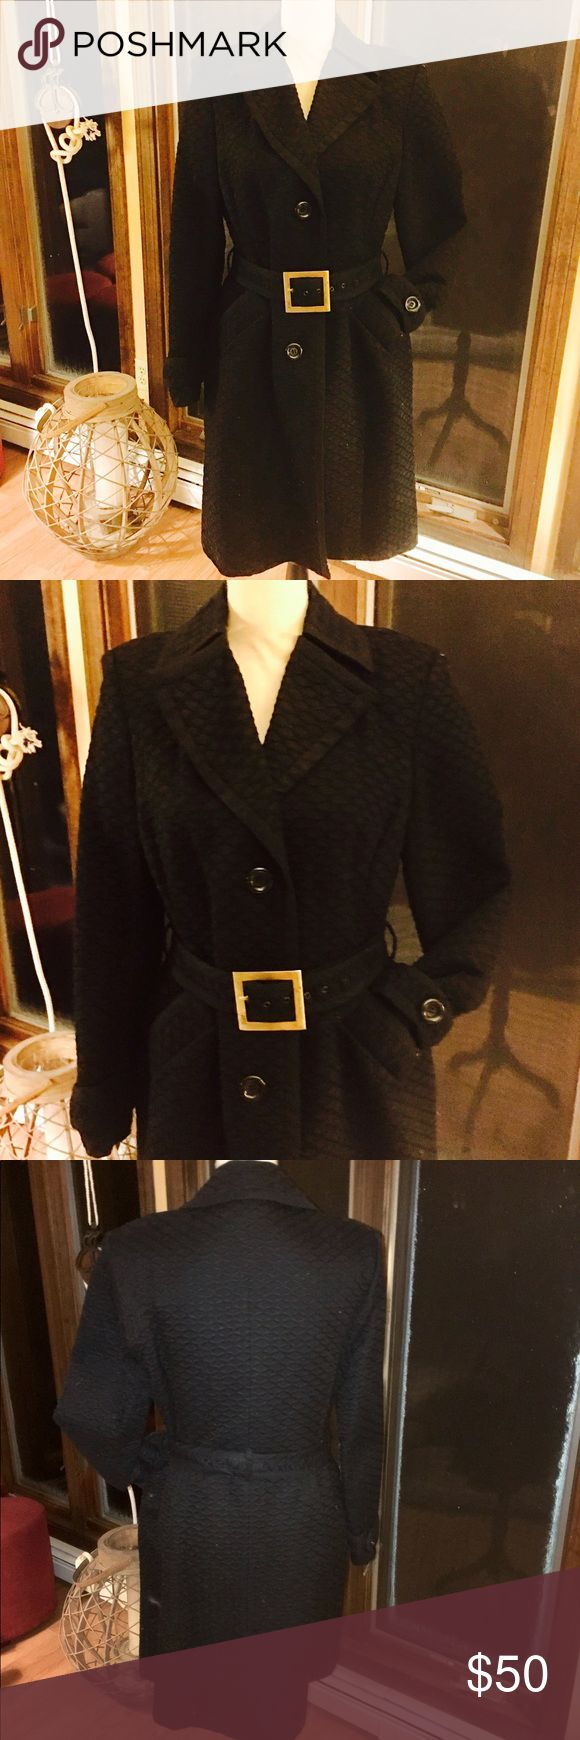 Ann Klein ll Black Twill Coat Beautify black twill lined belted coat by Ann Klein ll.  Great silhouette for that sophisticated occasion!  Great condition.... Ann Klein ll Jackets & Coats Trench Coats